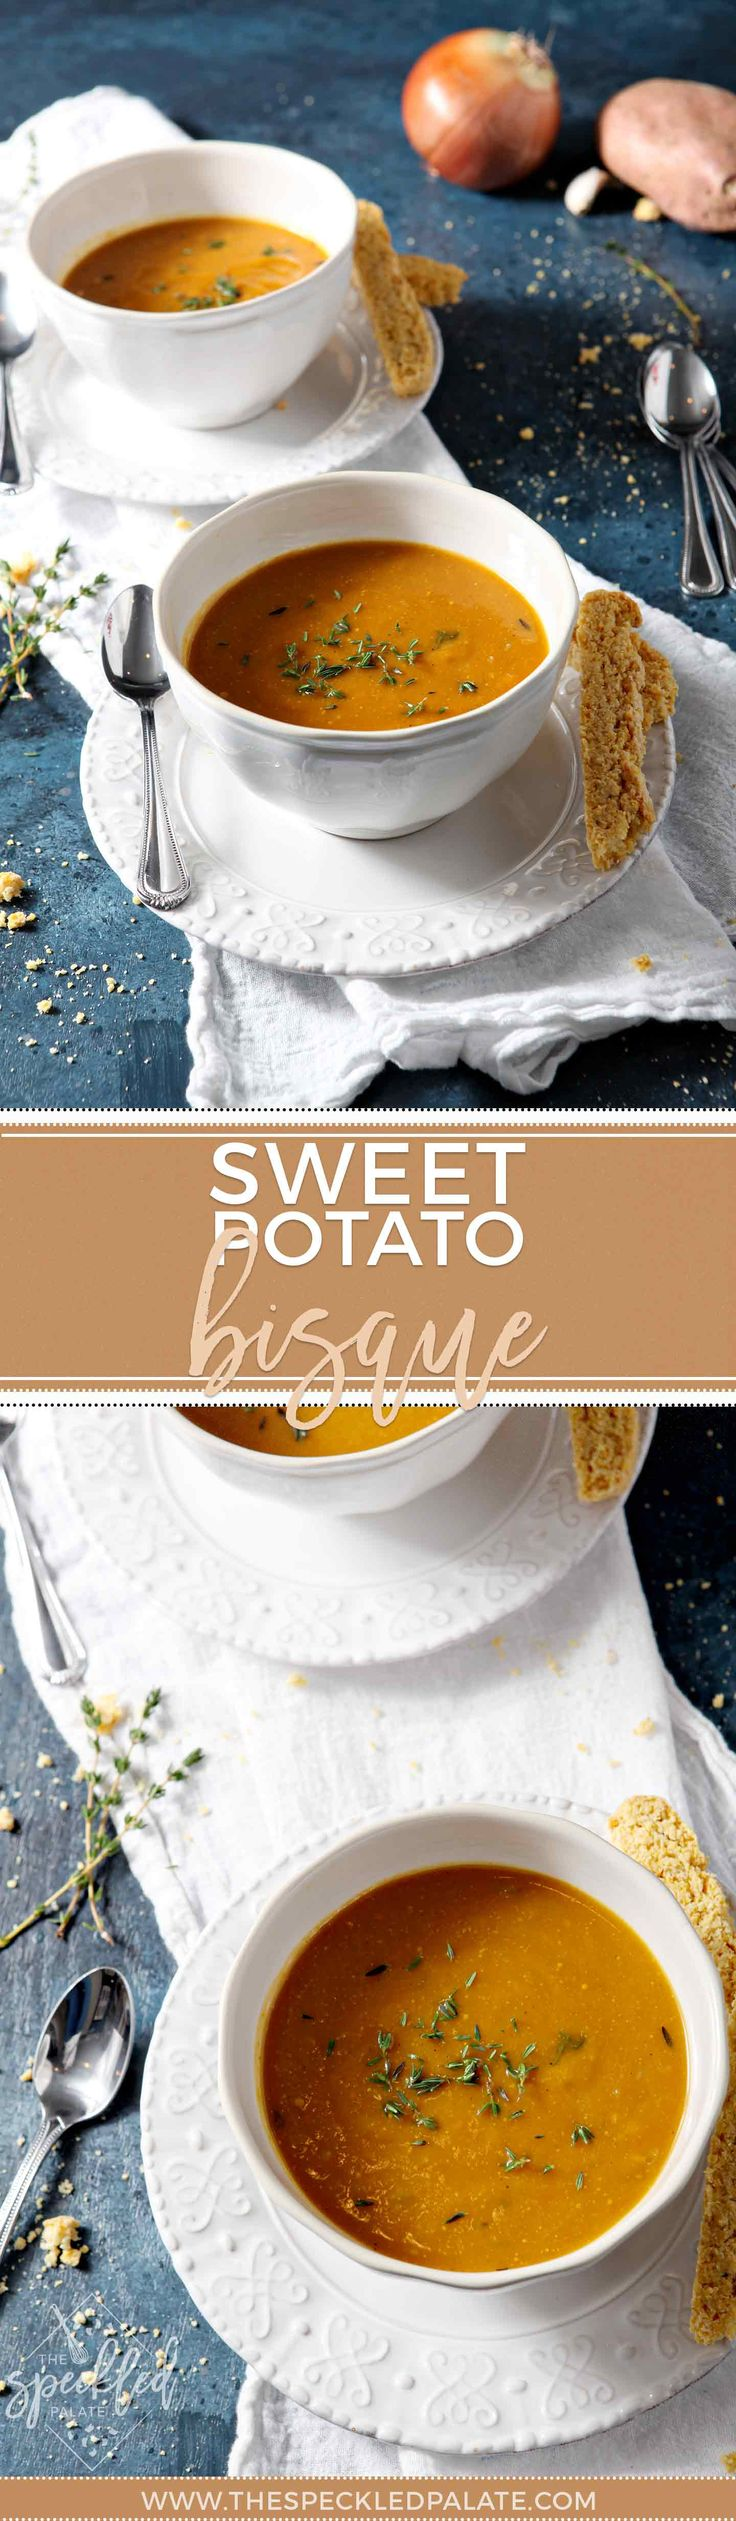 Sweet Potato Bisque is an amazing Vegetarian soup that can be made Vegan, Paleo or Whole 30! #soup #sweetpotato #vegetarian #vegan #whole30 #paleo